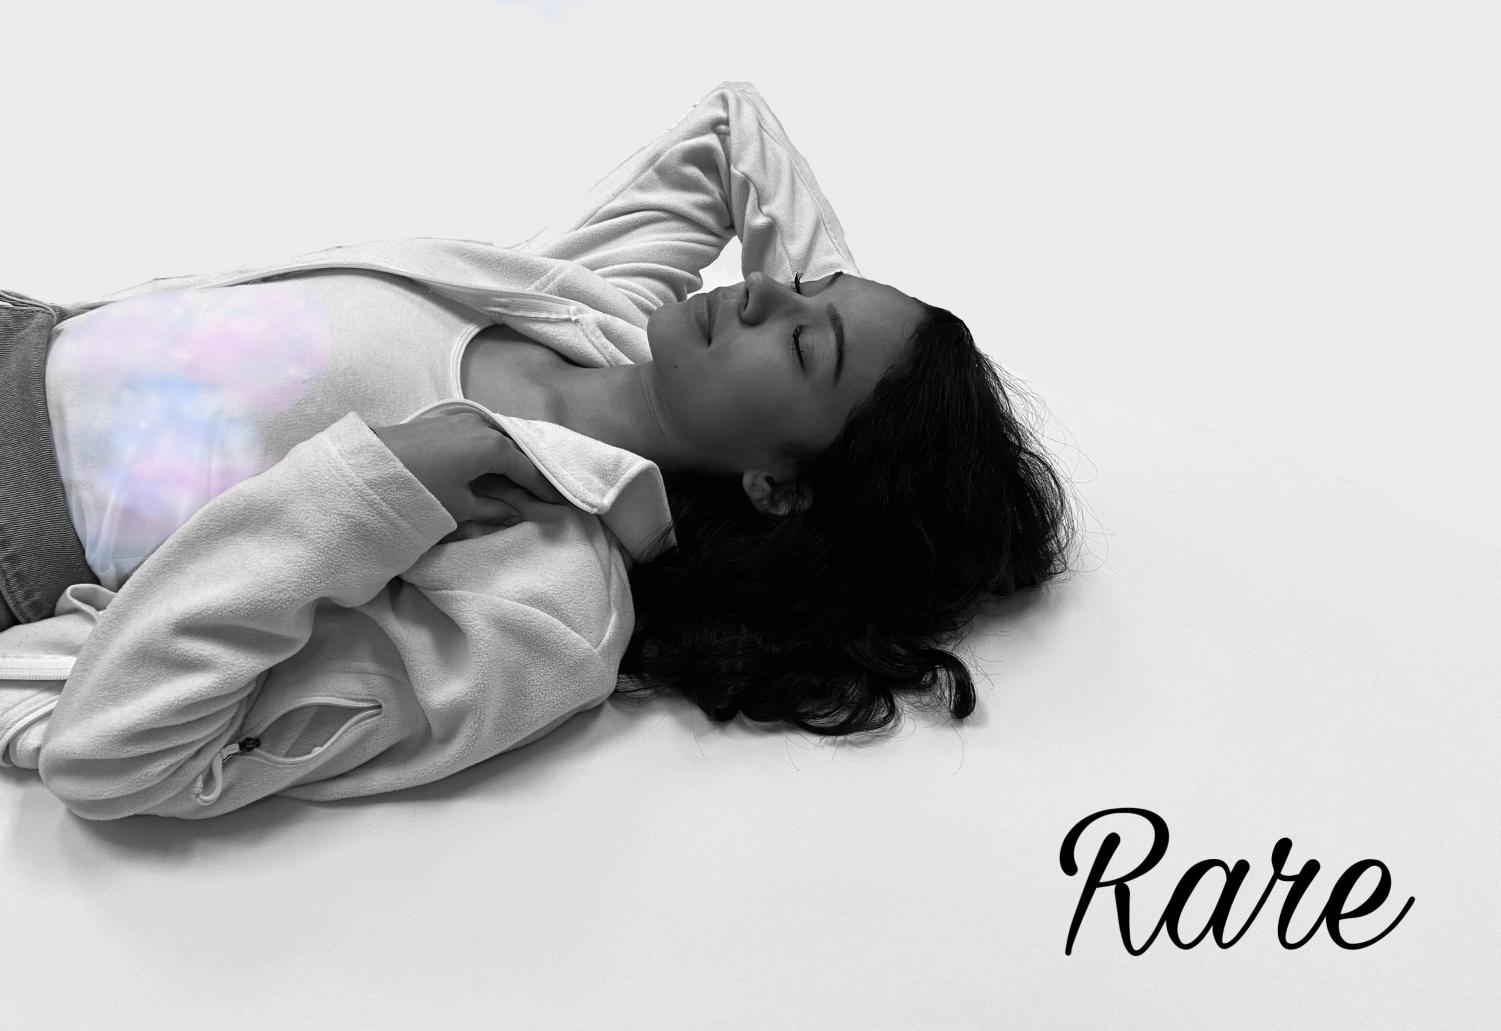 After five years of mental health struggles, heartbreak and a kidney transplant, artist Selena Gomez finally releases her third solo album, Rare, on January 10, 2020. The album mimics a diary of all the emotions that Gomez has experienced during her journey. All 13 tracks on Rare follow a similar theme of self-confidence for listeners to dance and sing along to.